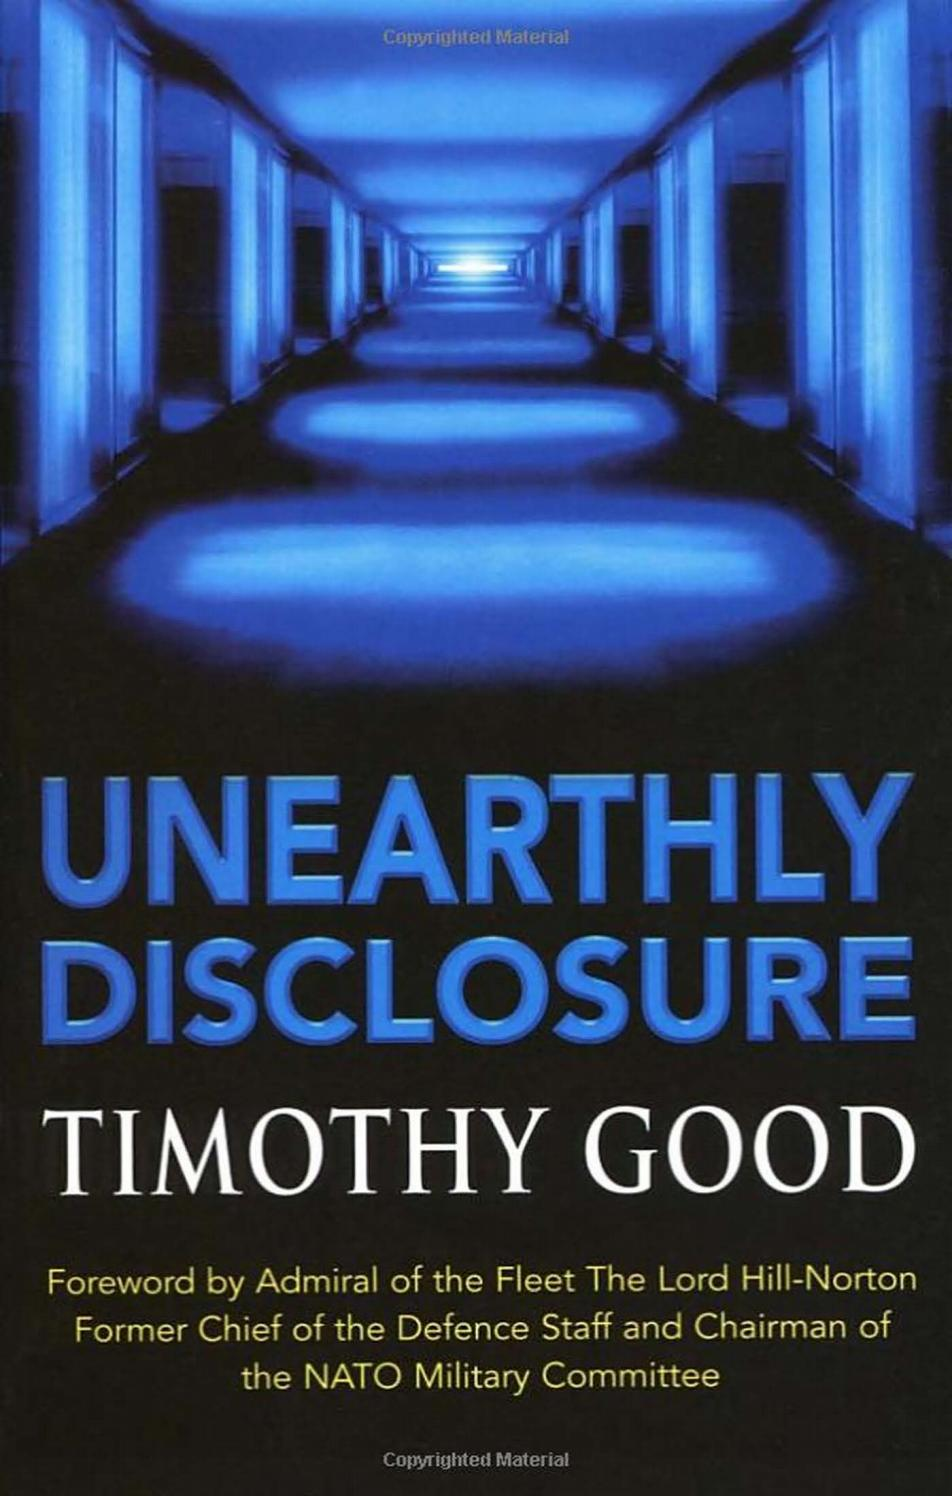 Design Bank 2 Zits Lugo.Timothy Good Unearthly Disclosure By Mach4c Issuu